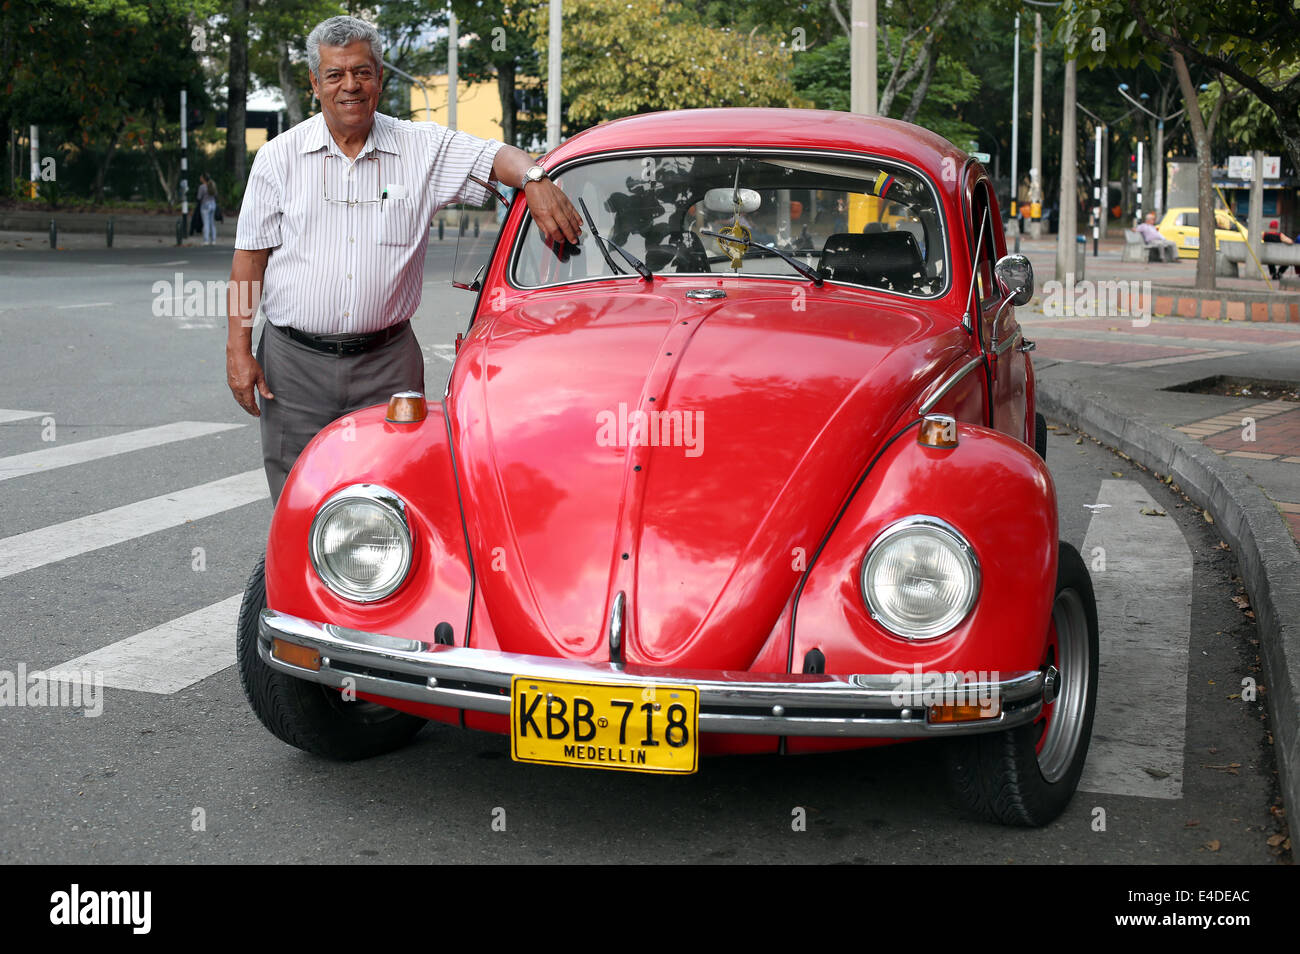 Man with classic volkswagen beetle in Medellin, Medellín, Colombia ...